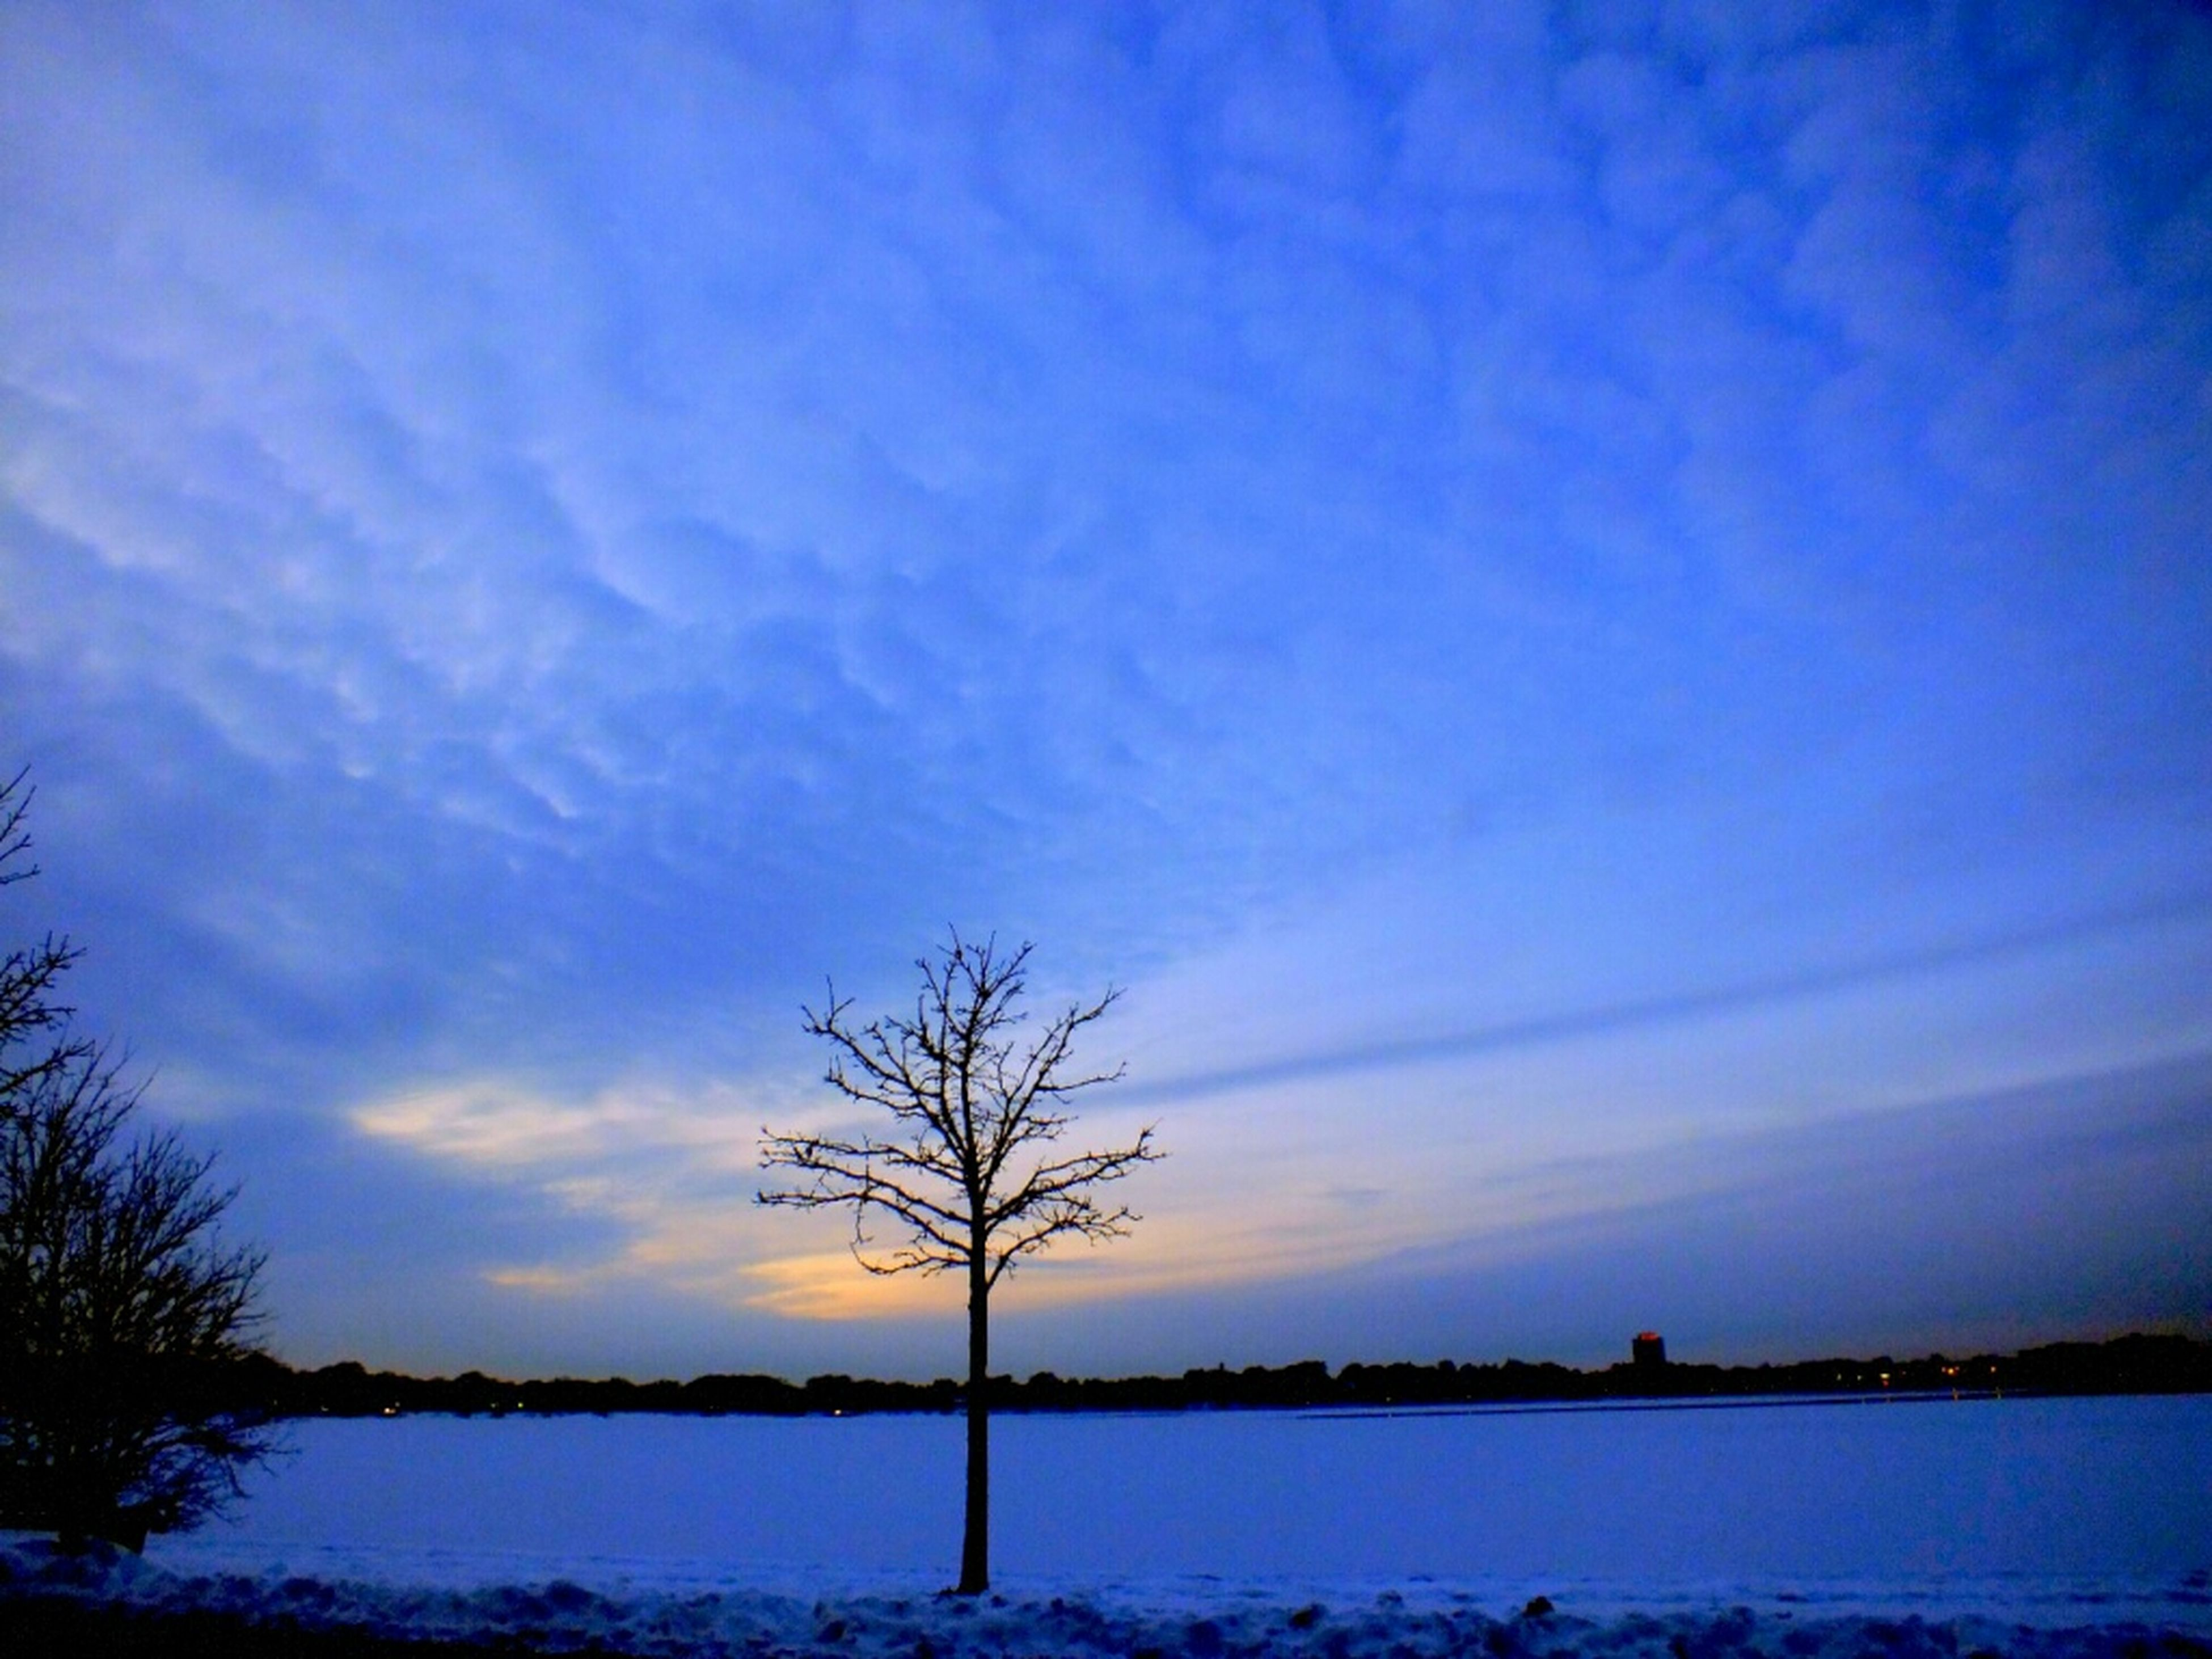 tranquil scene, tranquility, bare tree, scenics, beauty in nature, sky, tree, silhouette, water, sunset, nature, lake, branch, idyllic, cloud - sky, blue, cloud, non-urban scene, landscape, winter